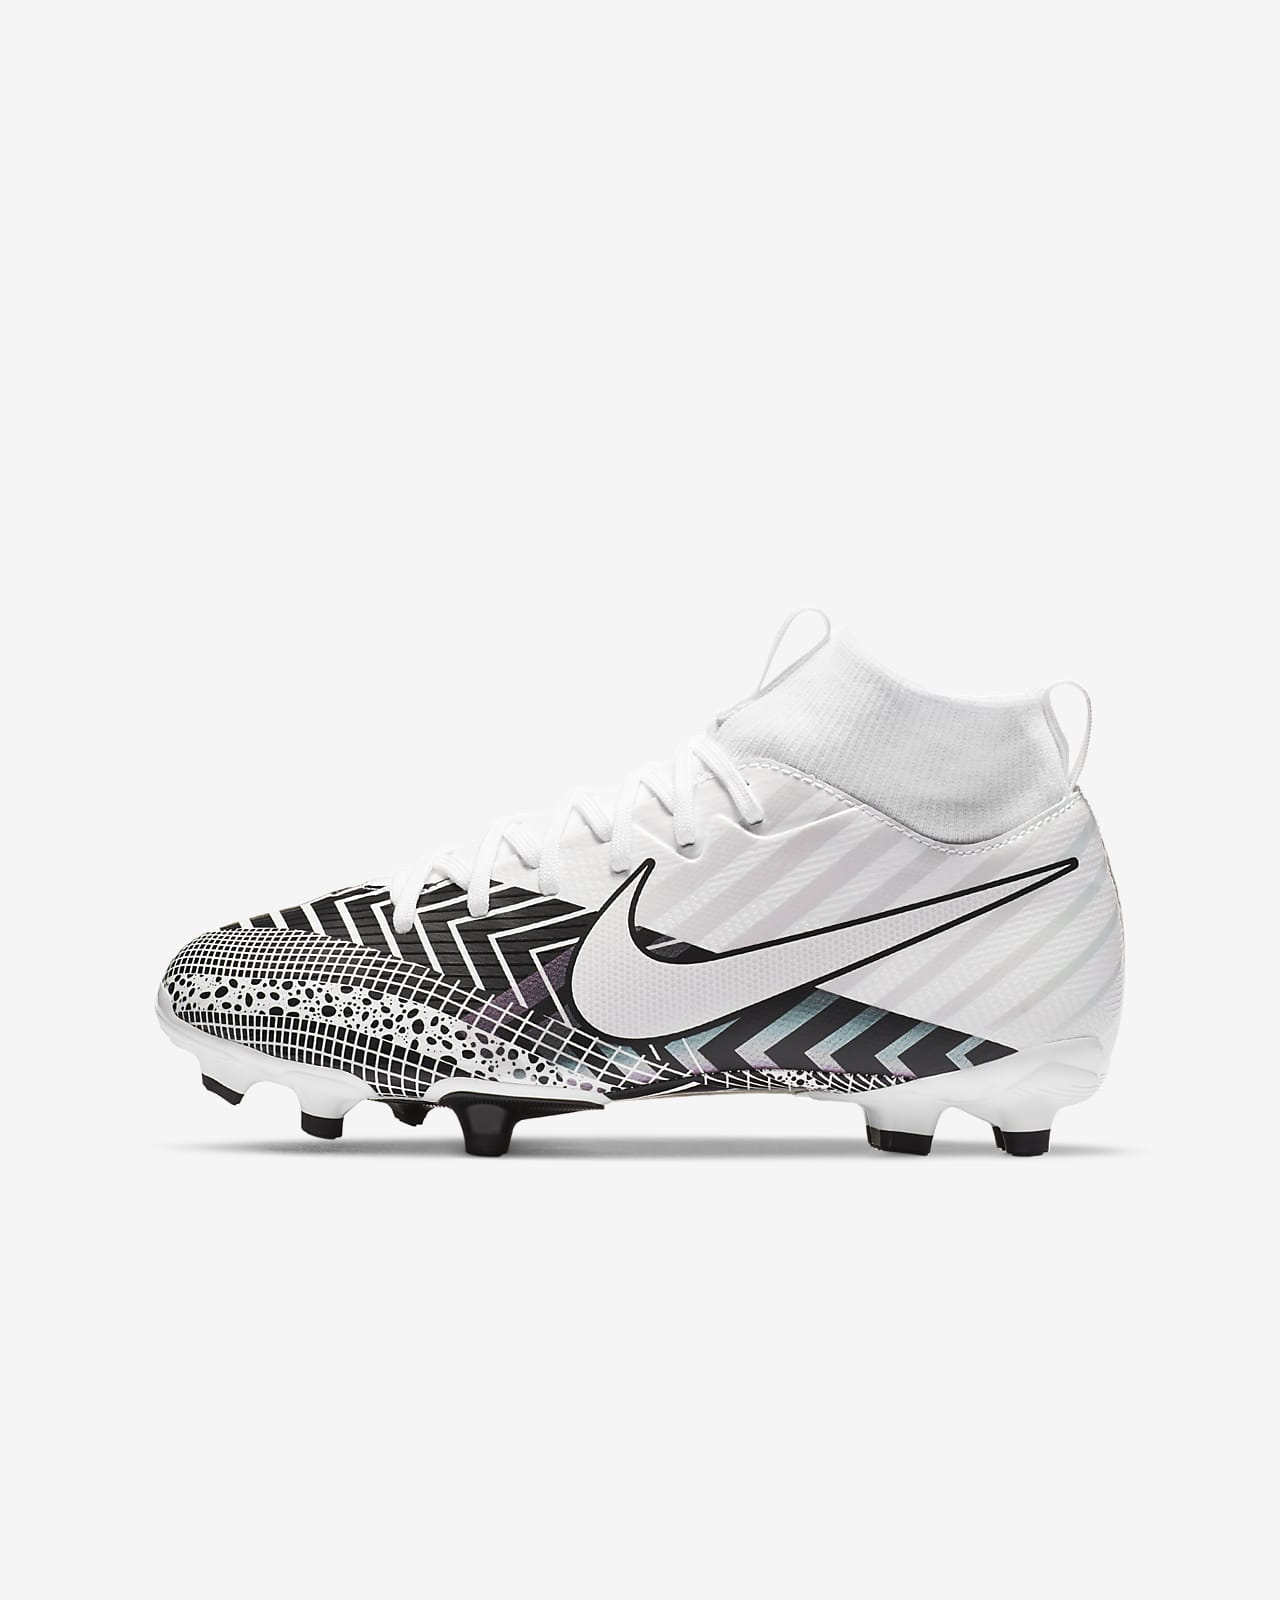 Scarpa da calcio multiterreno Nike Jr. Mercurial Superfly 7 Academy MDS MG - Bambini/Ragazzi